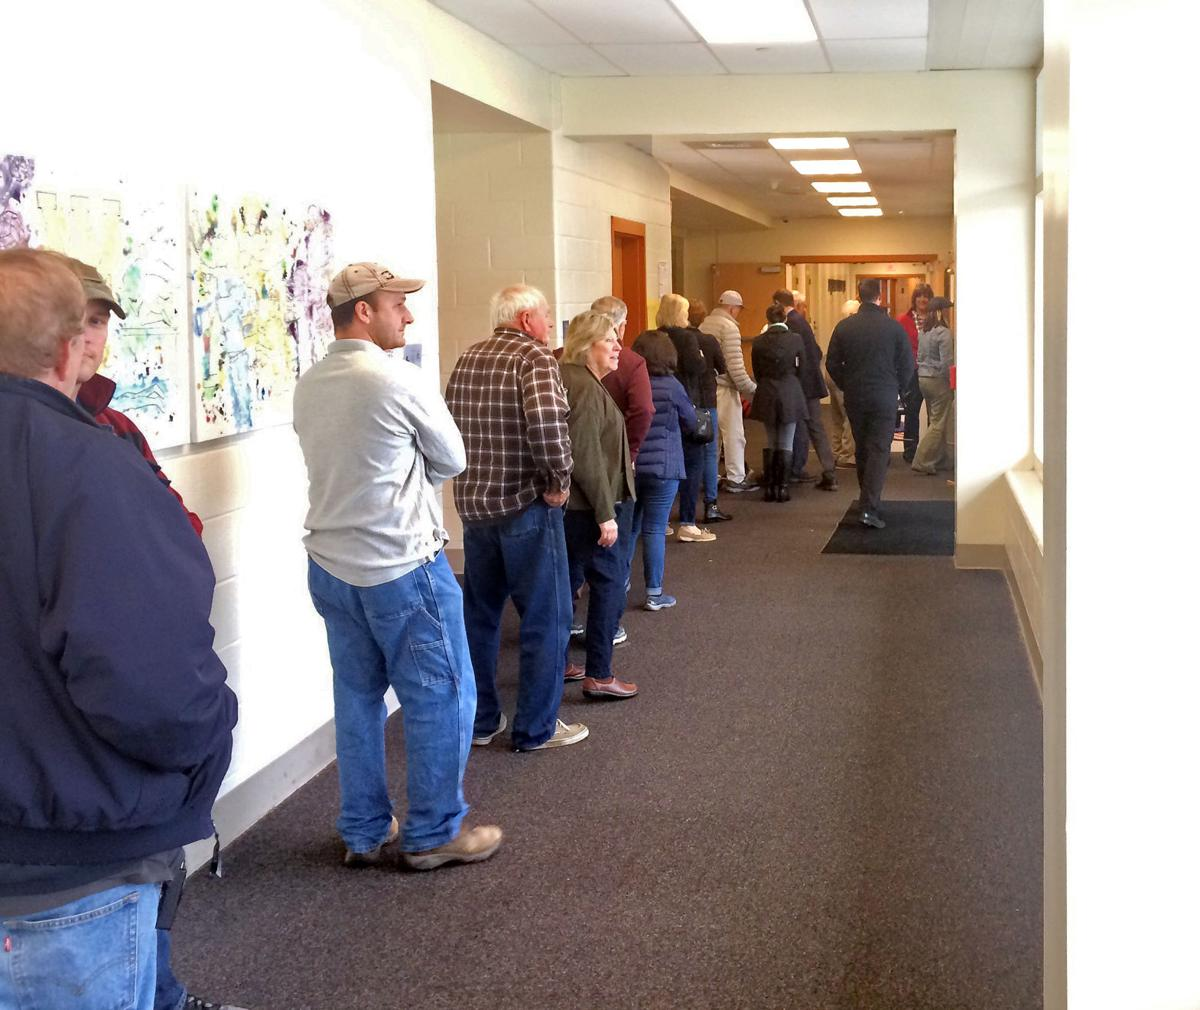 Watertown: Voters Turn Out in Droves